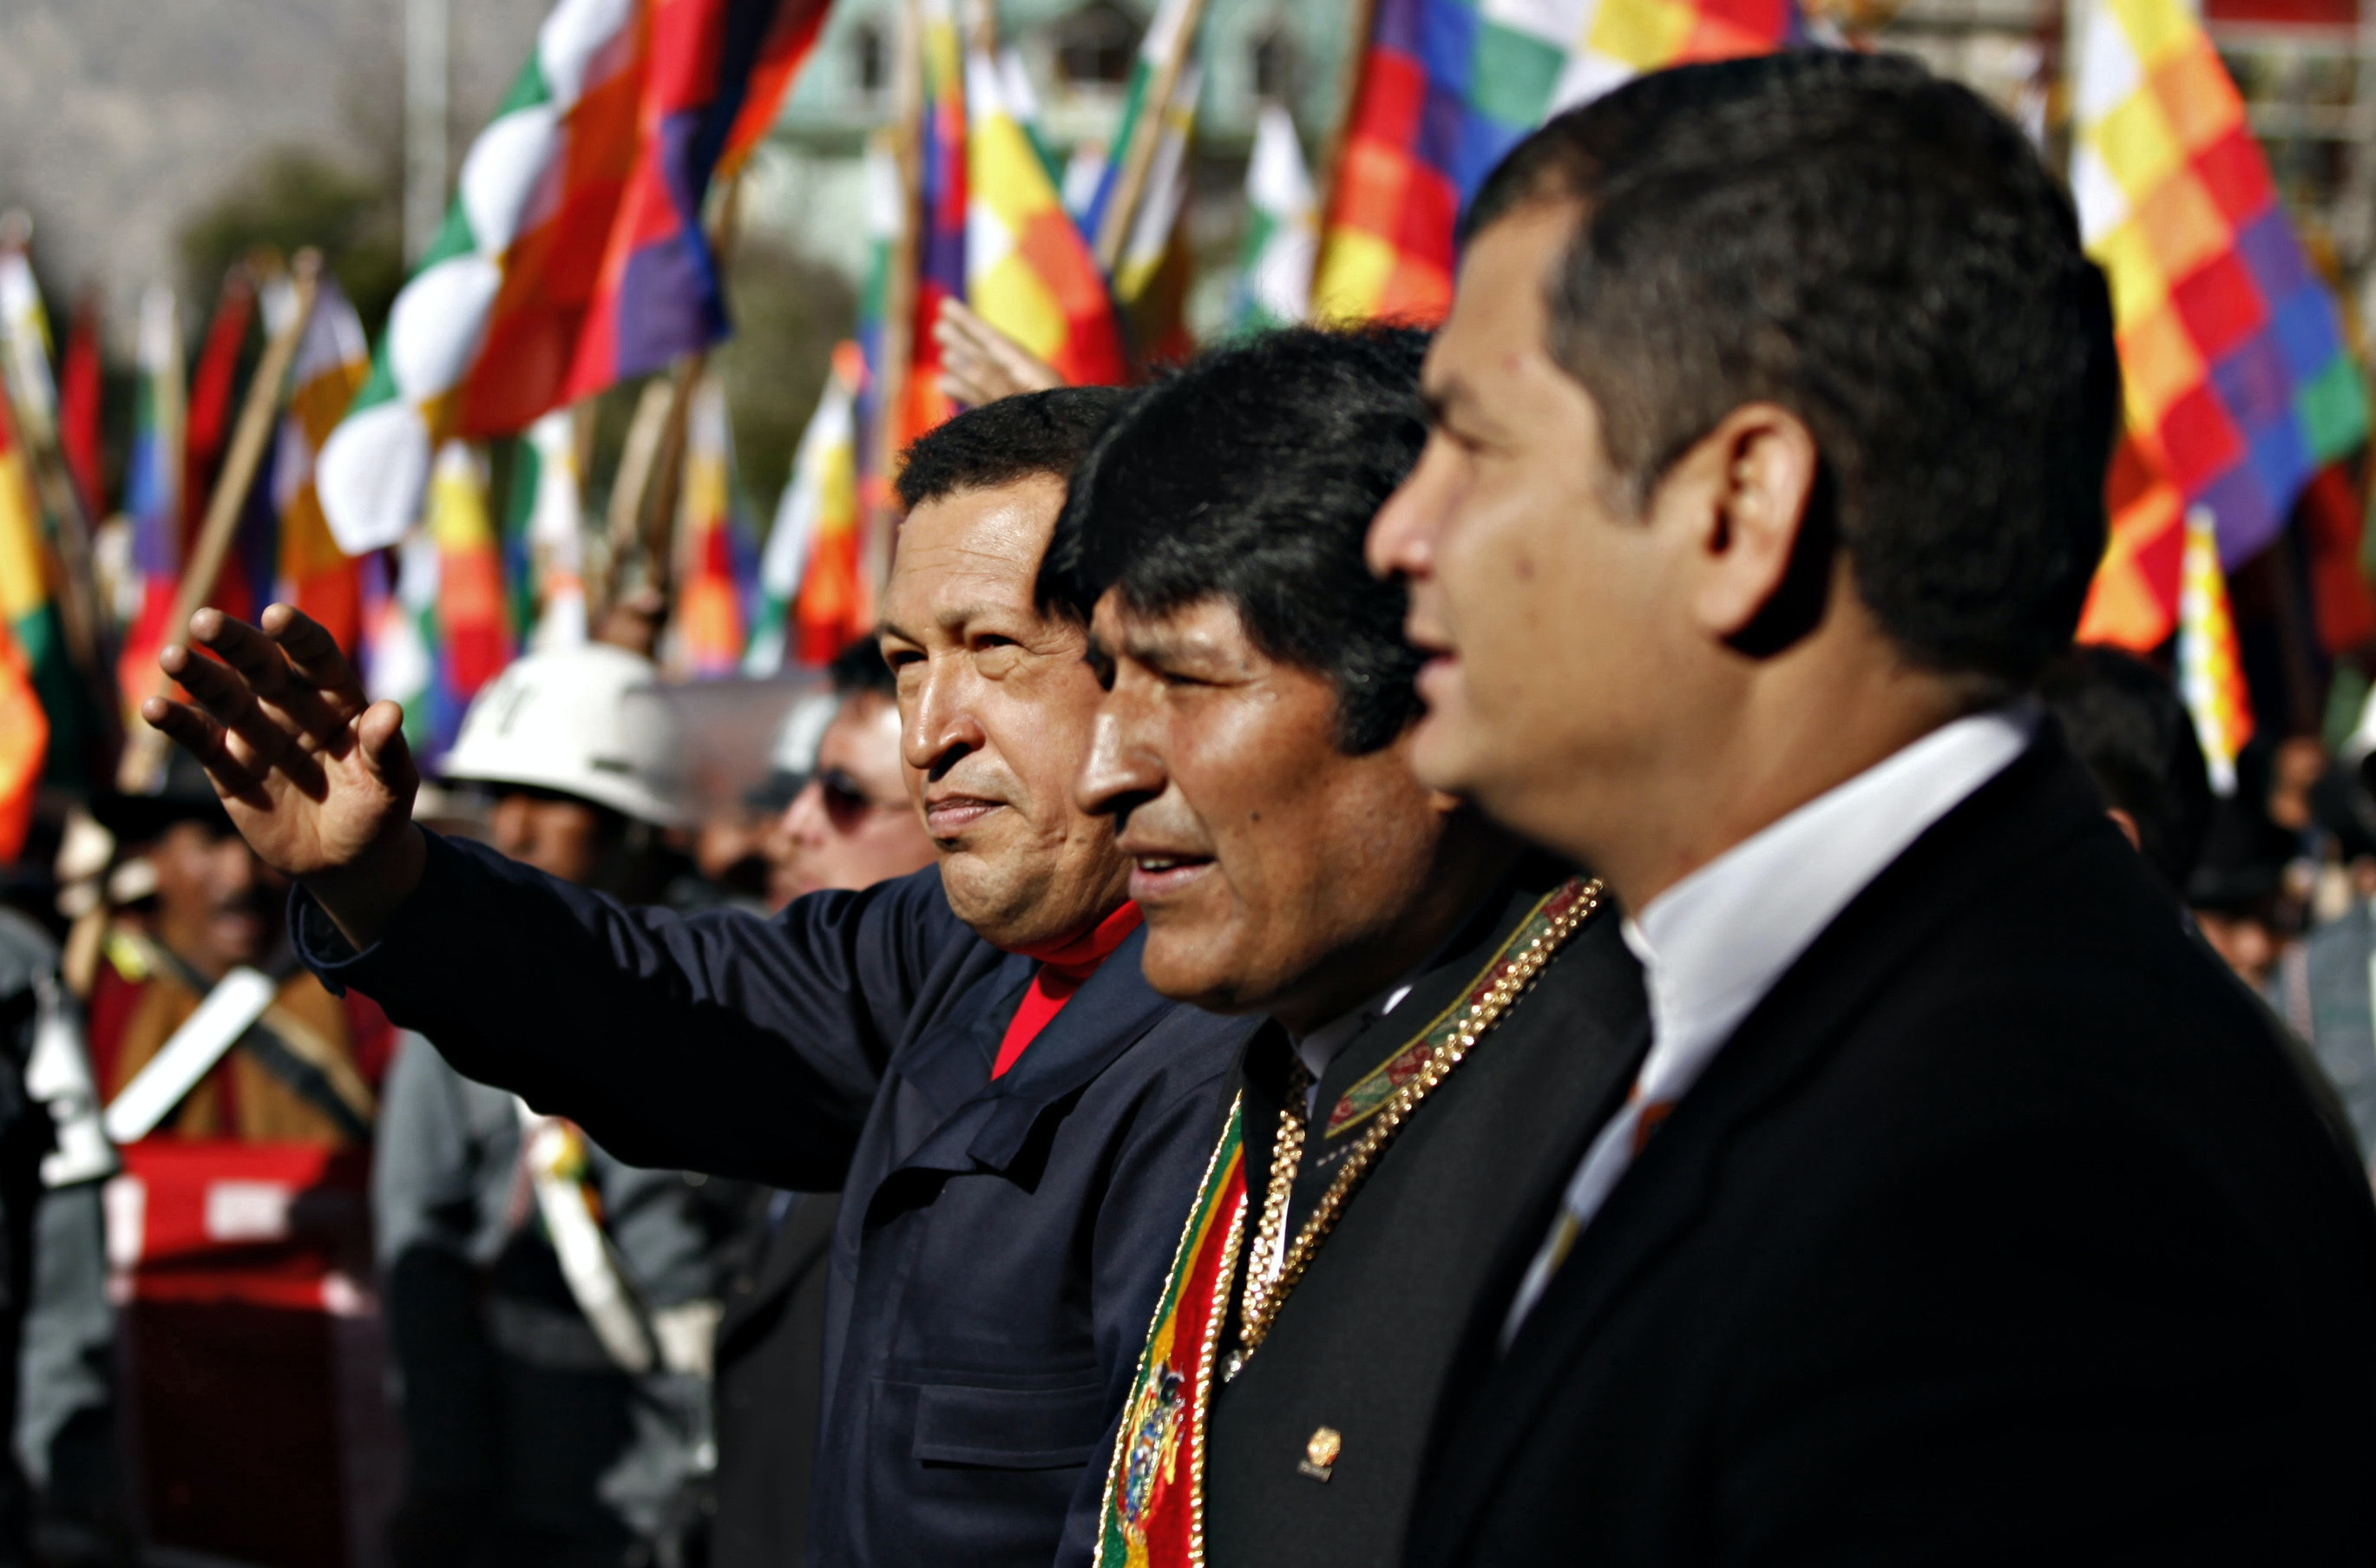 Venezuela's President Hugo Chavez, left, Bolivia's President Evo Morales, center, and Ecuador's President Rafael Correa arrive for a military parade commemorating the 200th anniversary of the beginning of Bolivia's independence movement in La Paz, Thursday, July 16, 2009. Bolivia became independent from Spain in 1825. (AP Photo/Patricio Crooker)